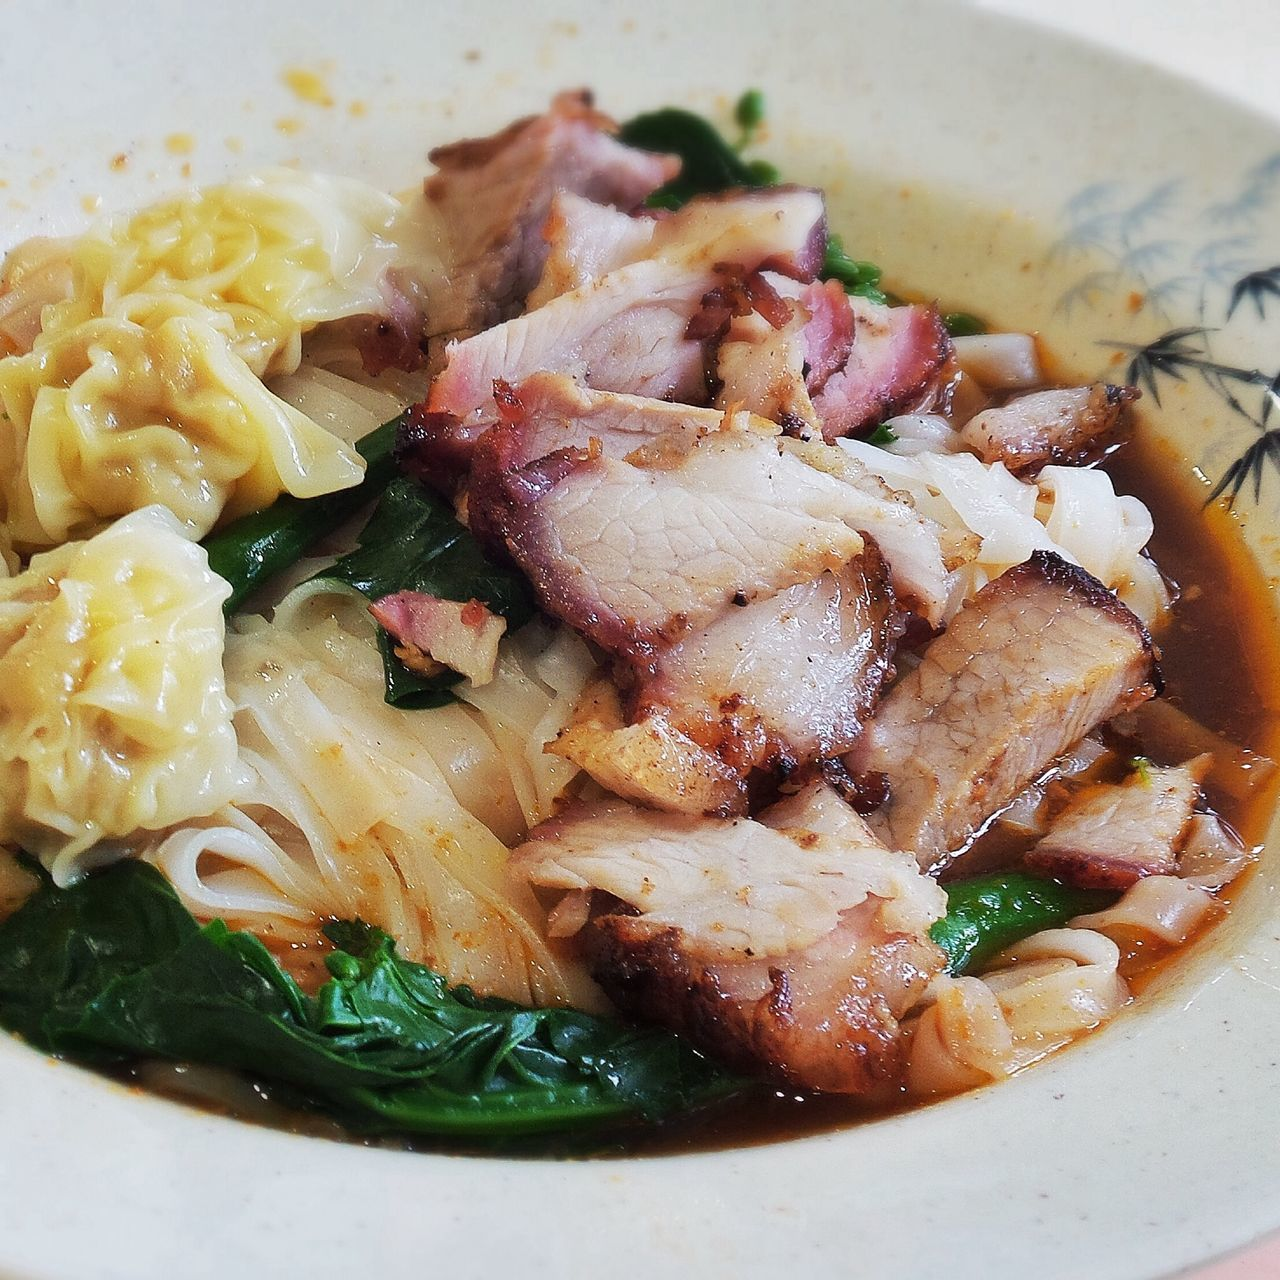 Pork Meat With Pasta And Cabbage